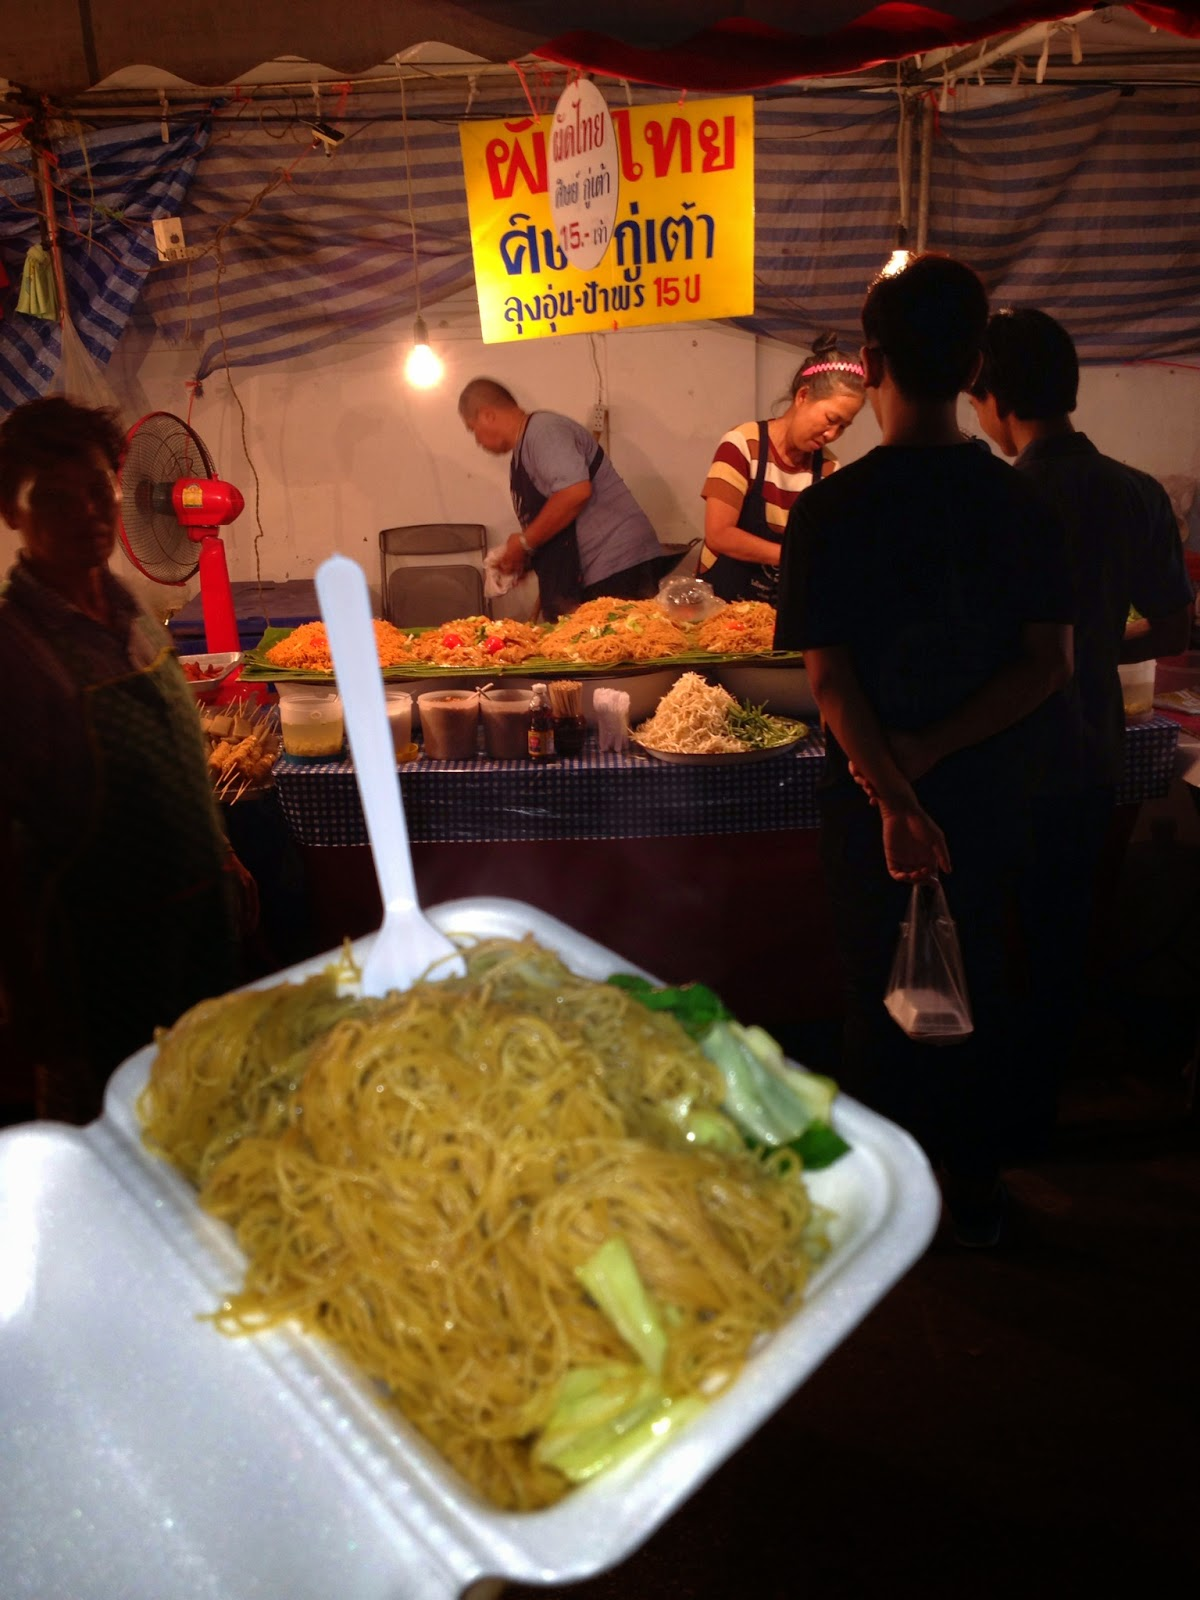 Chiang Mai - Noodles for 15 baht